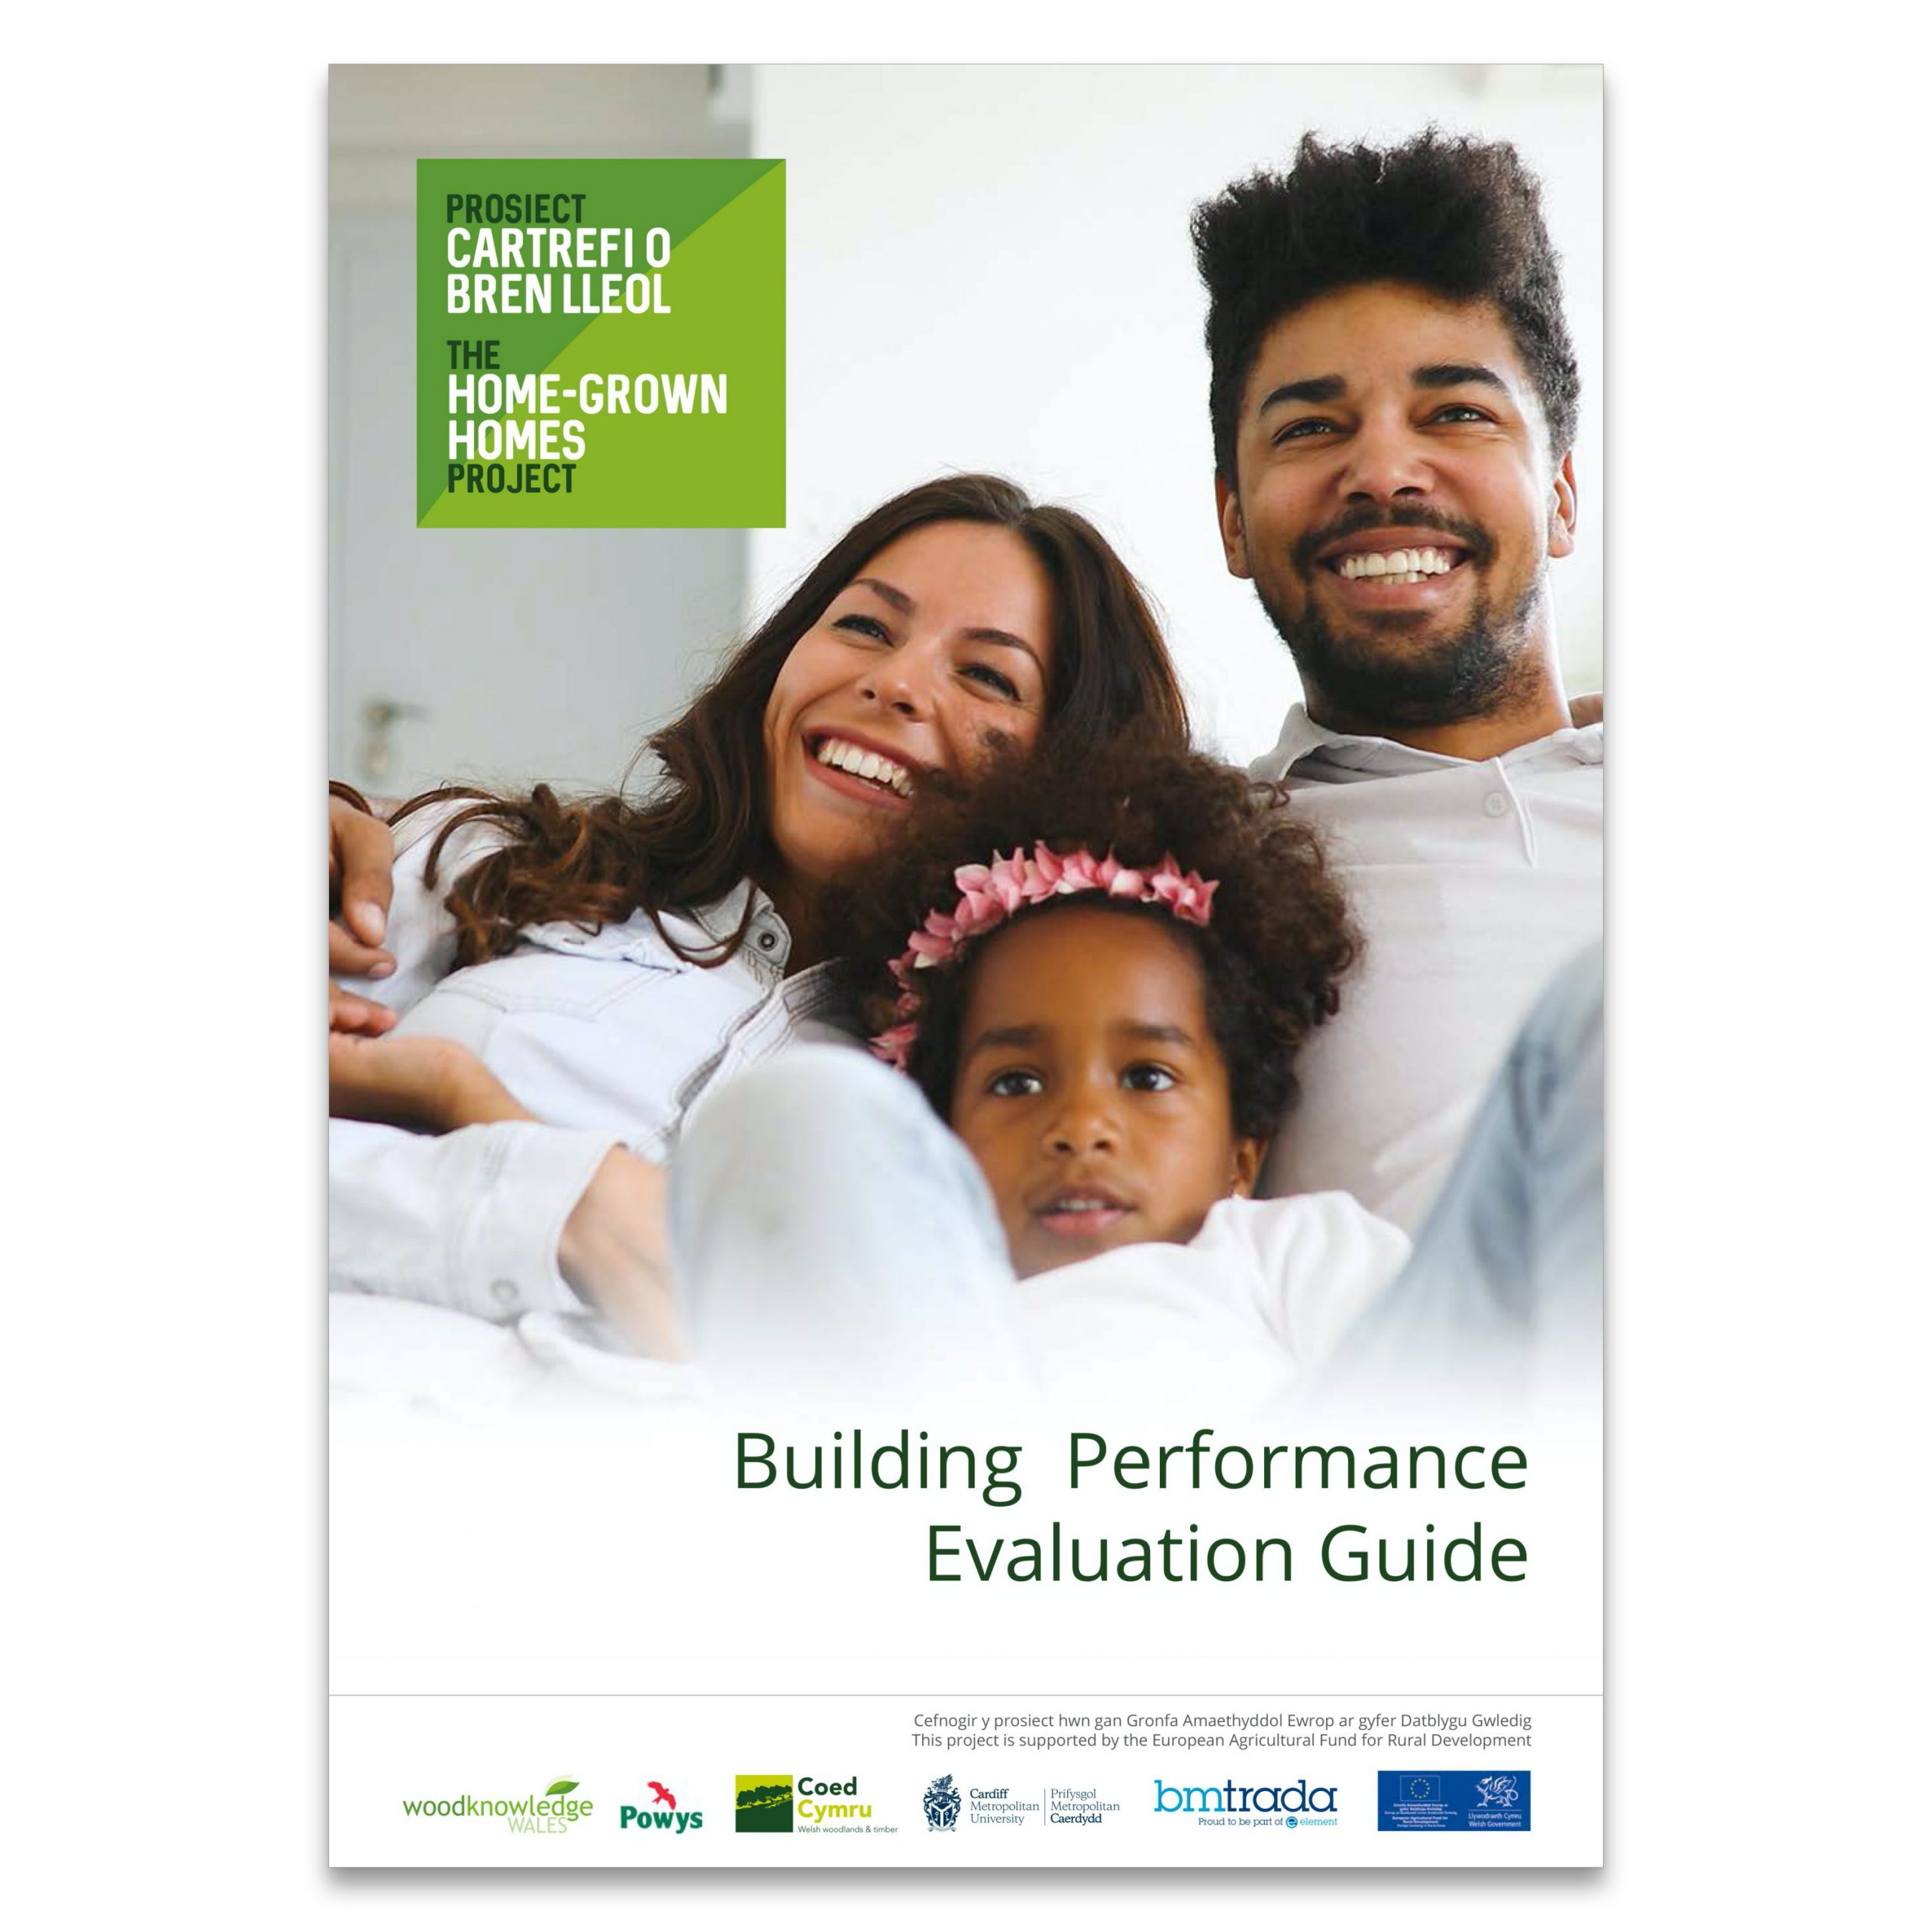 New Building Performance Evaluation Guidance